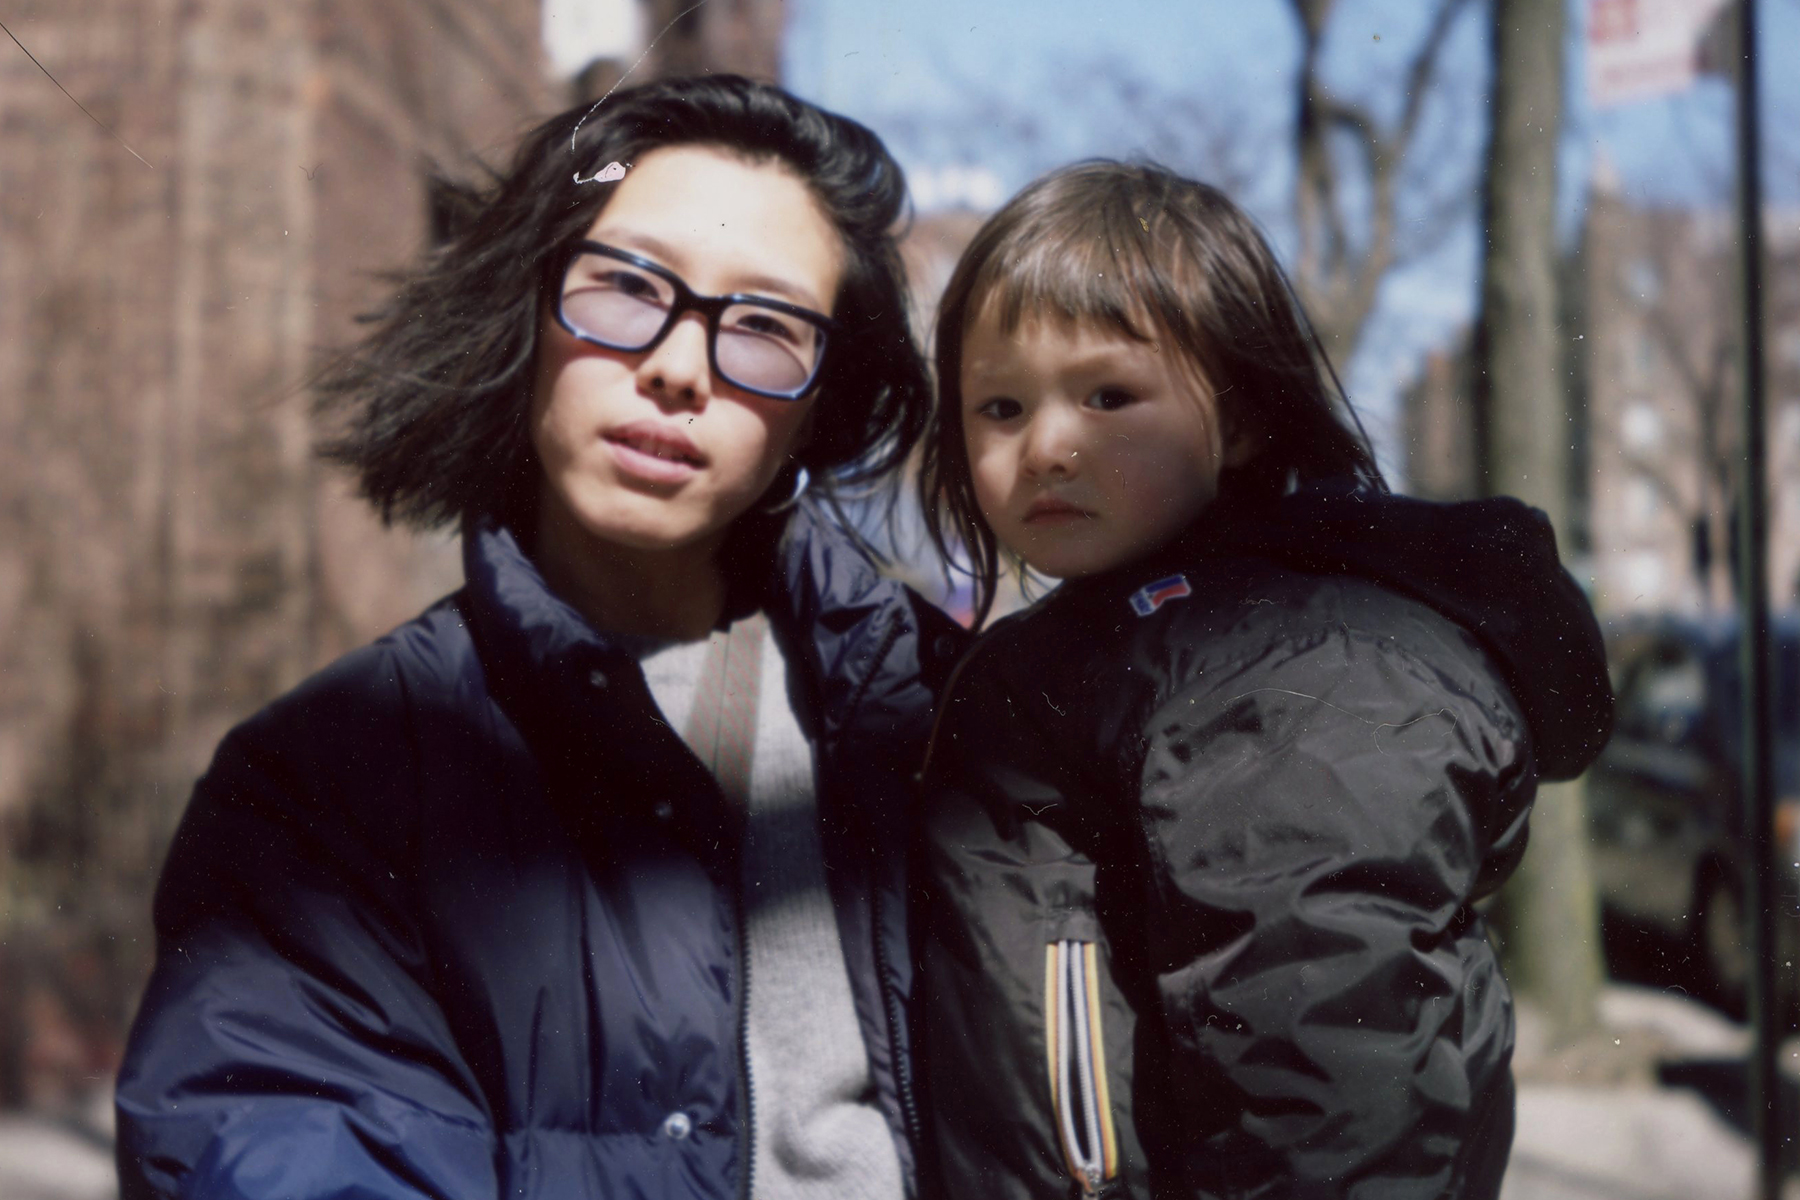 two bridges new york city kids unisex label brand childrenswear clothing where to buy kathy lo interview sage photographer mom mother son